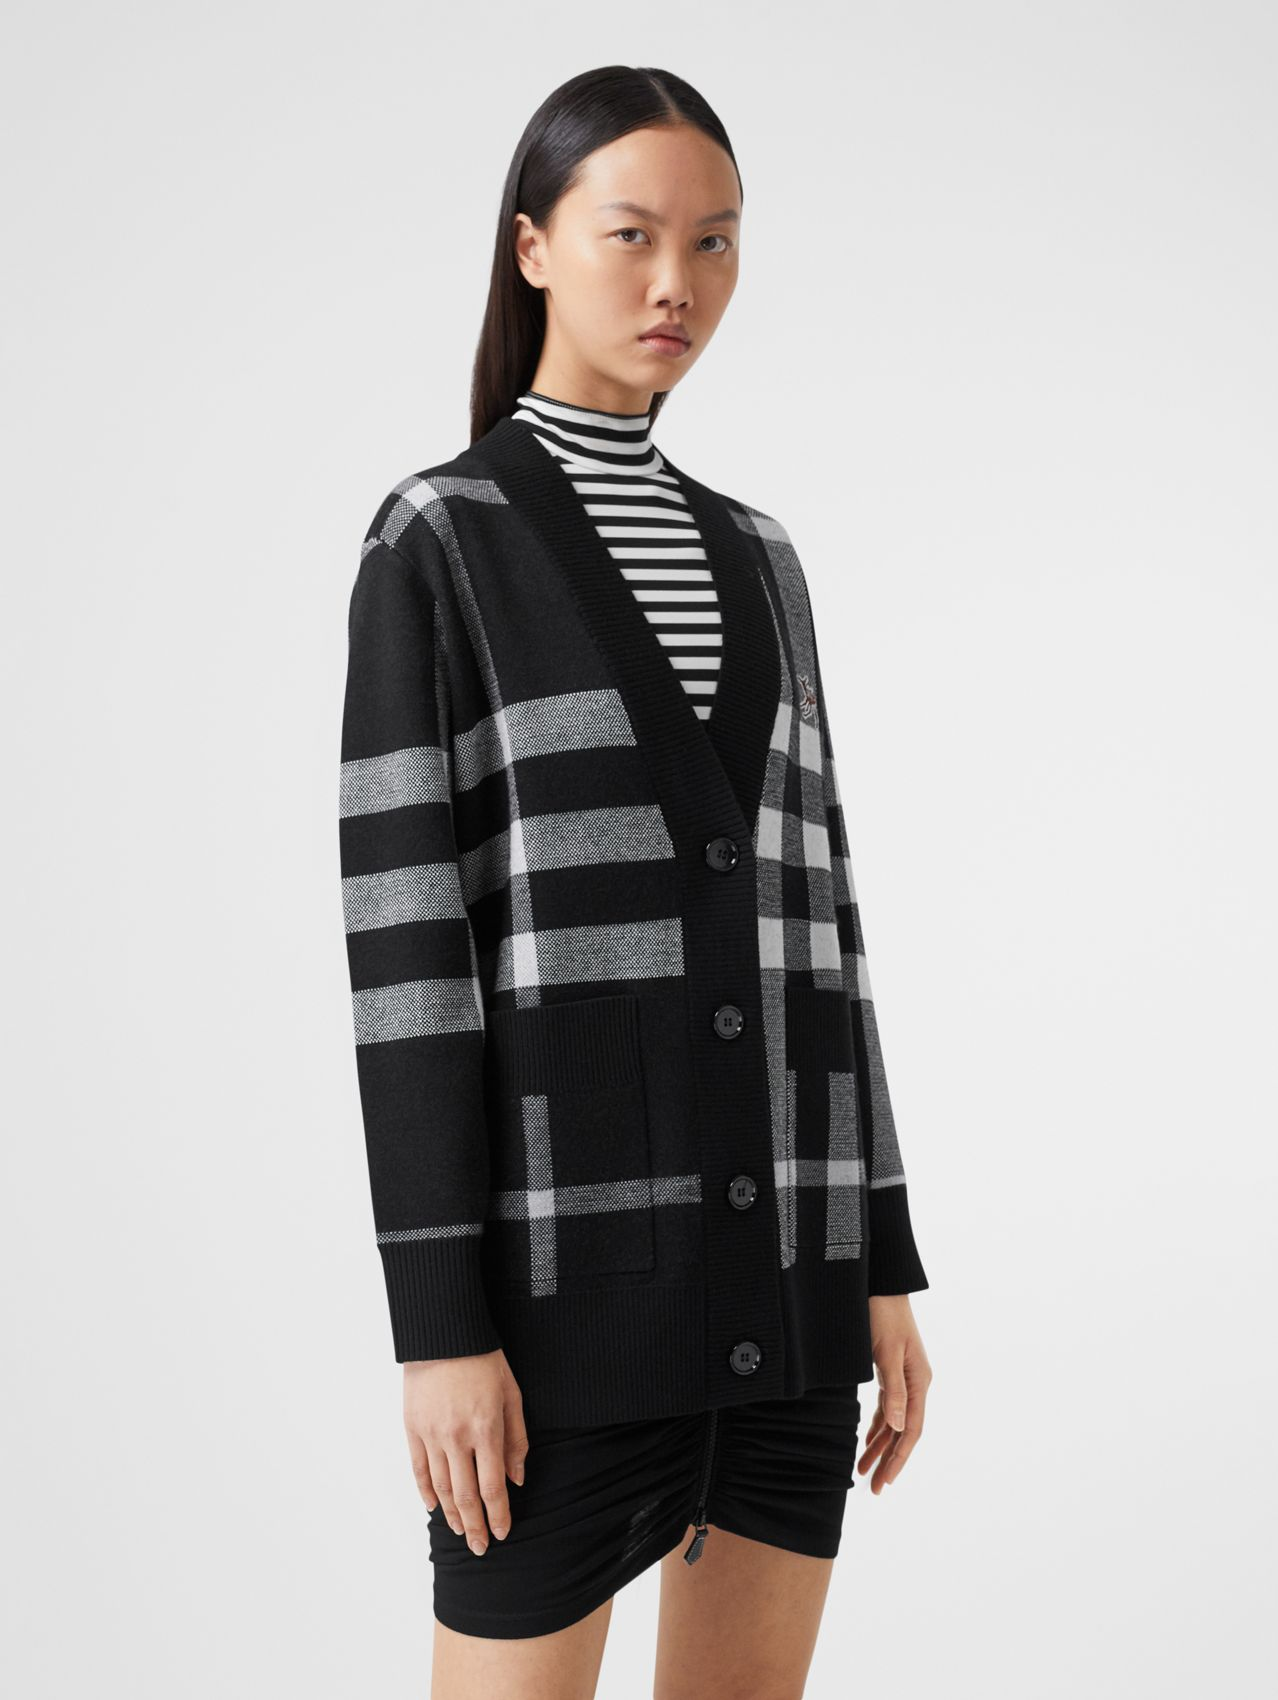 Deer Motif Check Wool Blend Jacquard Cardigan in Black